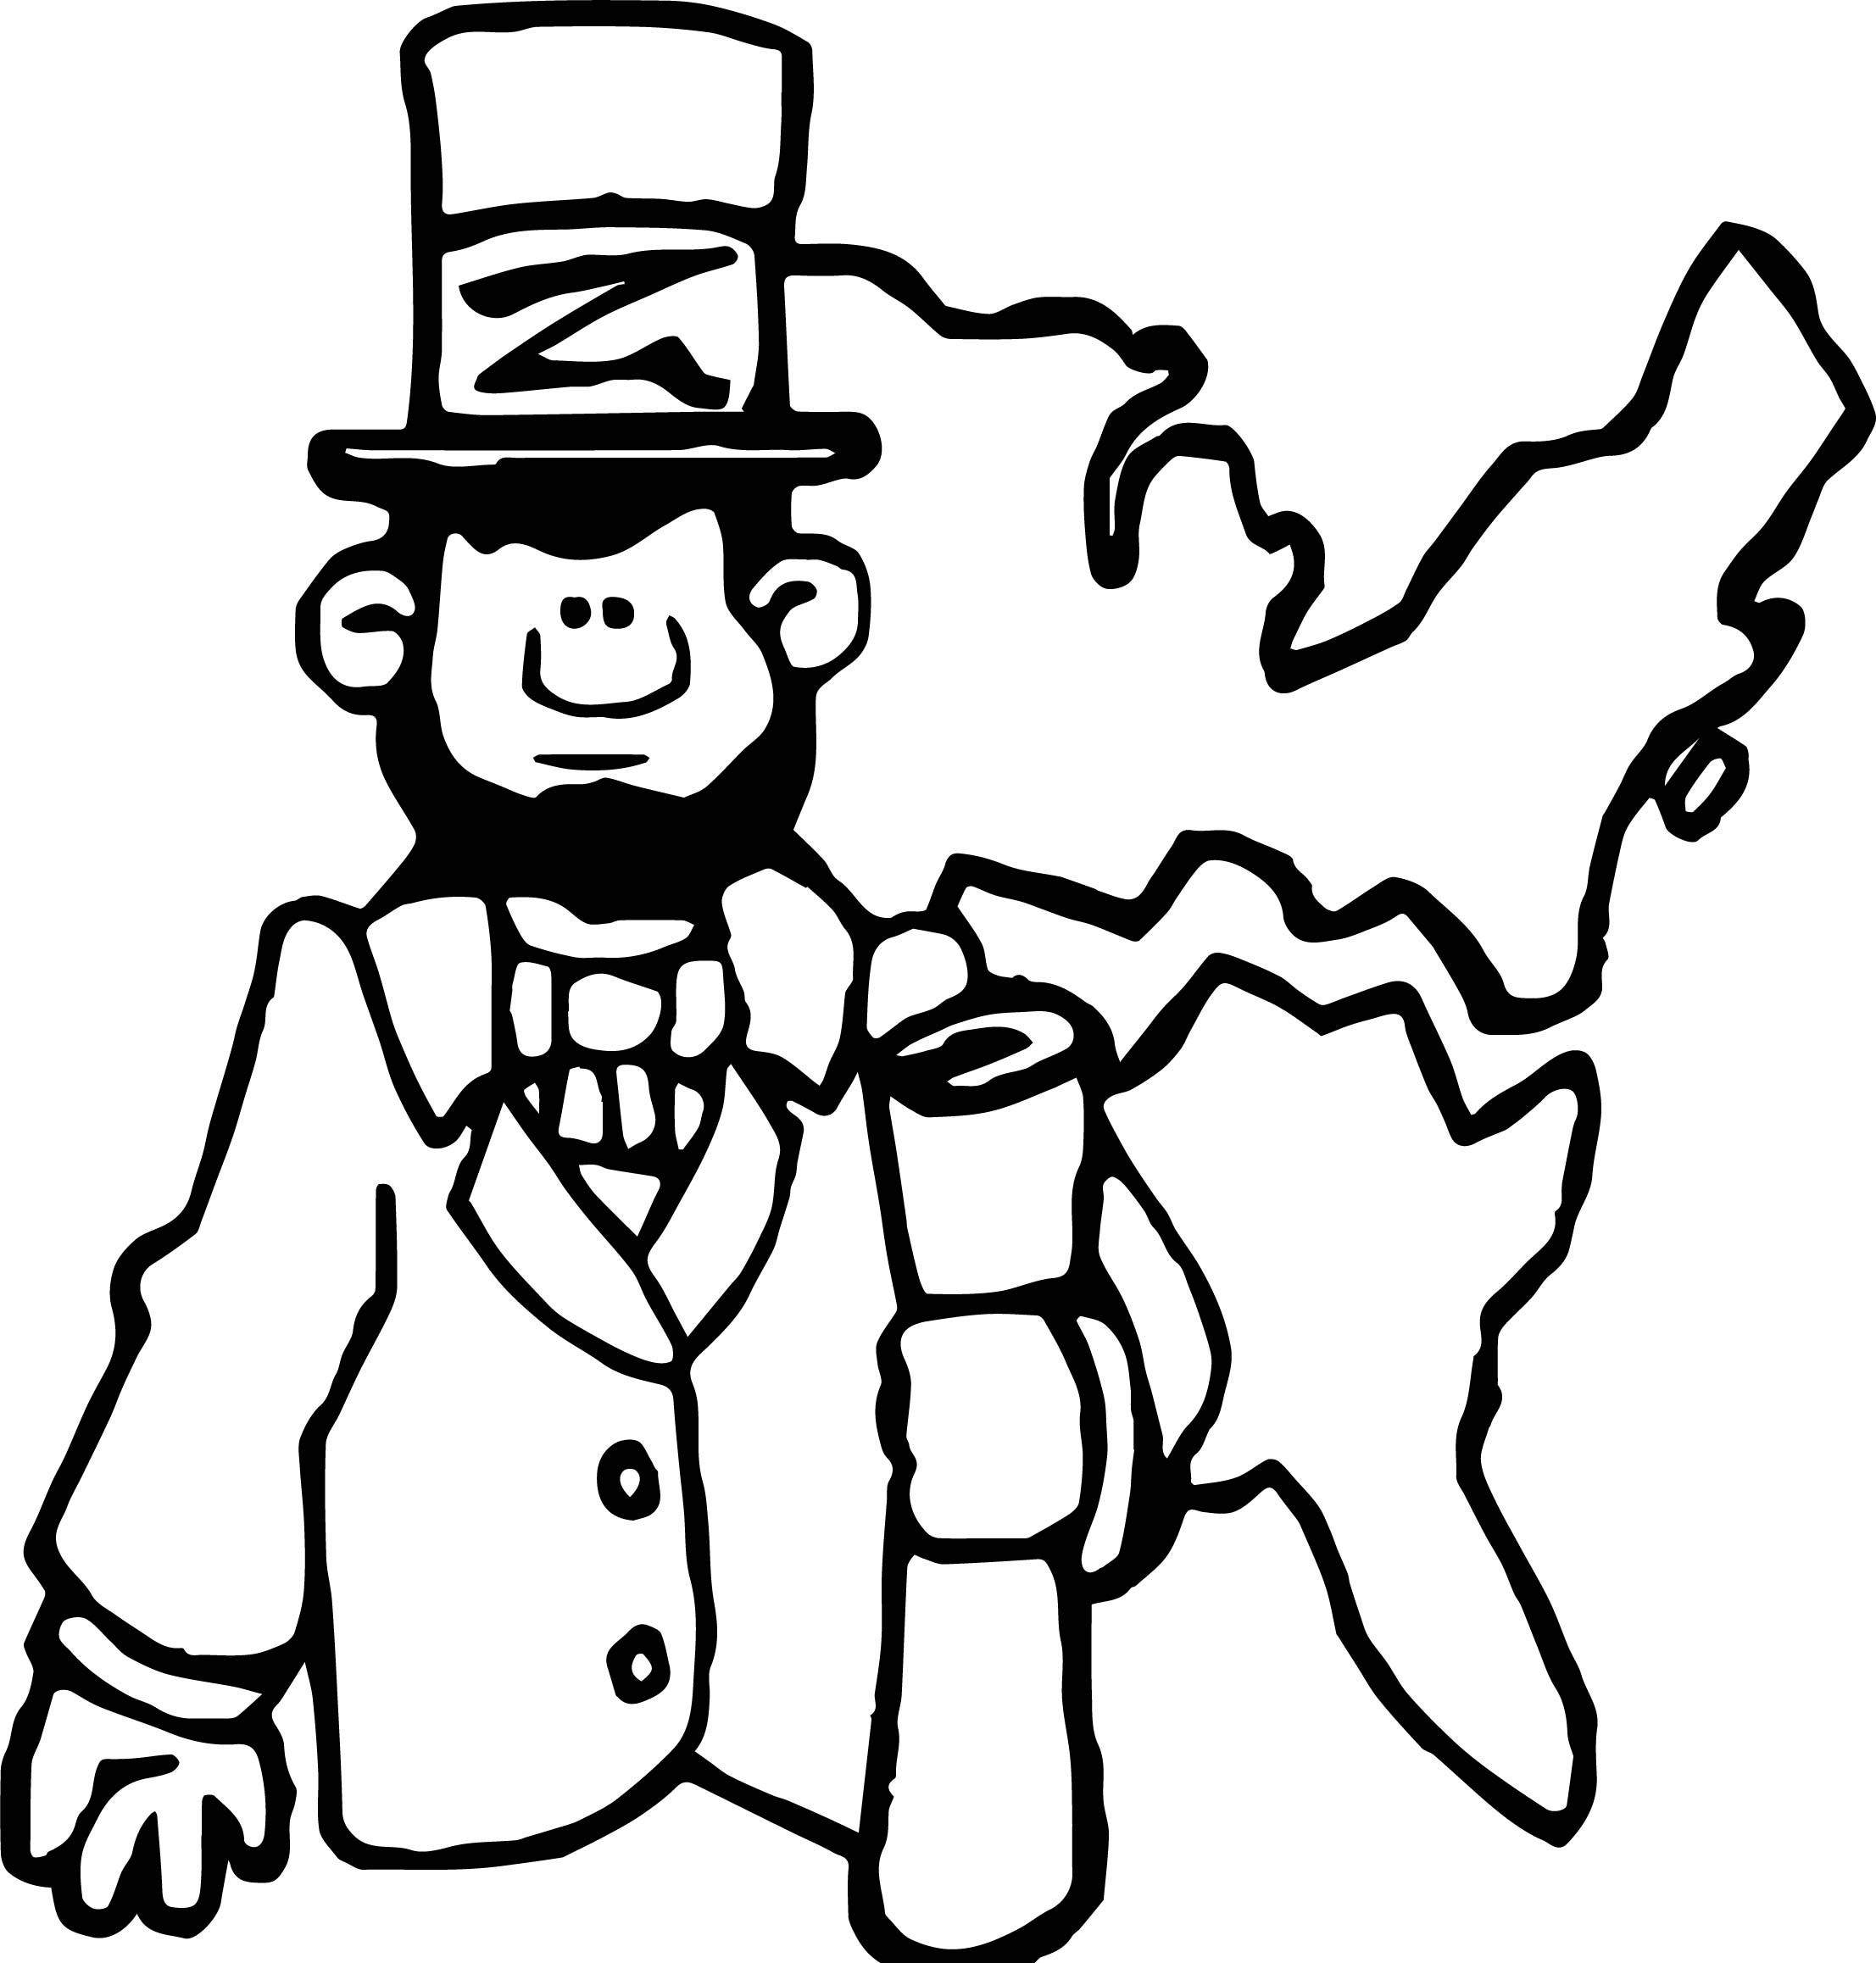 Awesome Abraham Lincoln President Map Coloring Page Fathers Day Coloring Page American Flag Coloring Page Coloring Pages For Kids